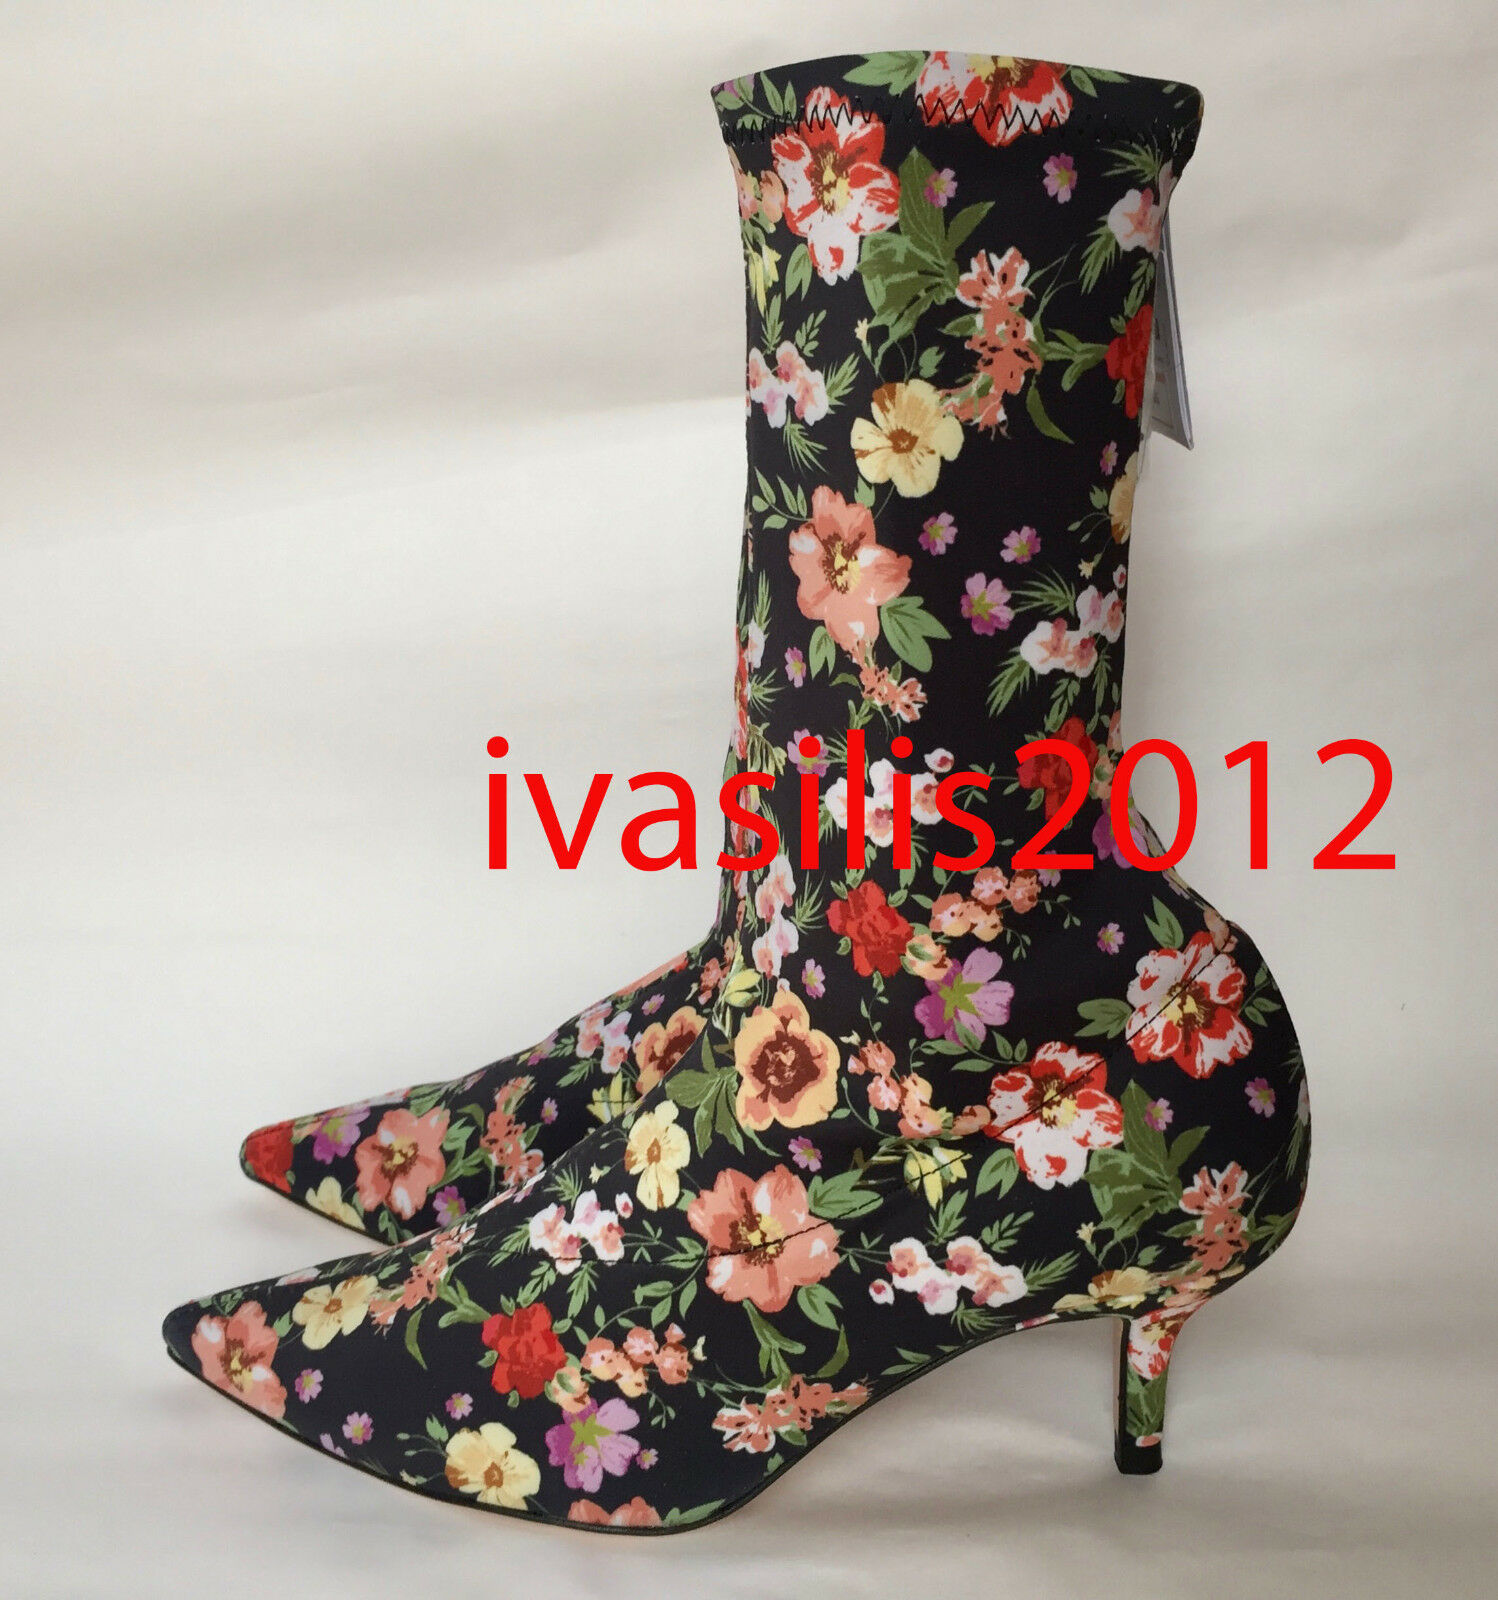 ZARA FLORAL FABRIC HIGH HEEL ANKLE BOOTS 35-41 REF. 1113/201